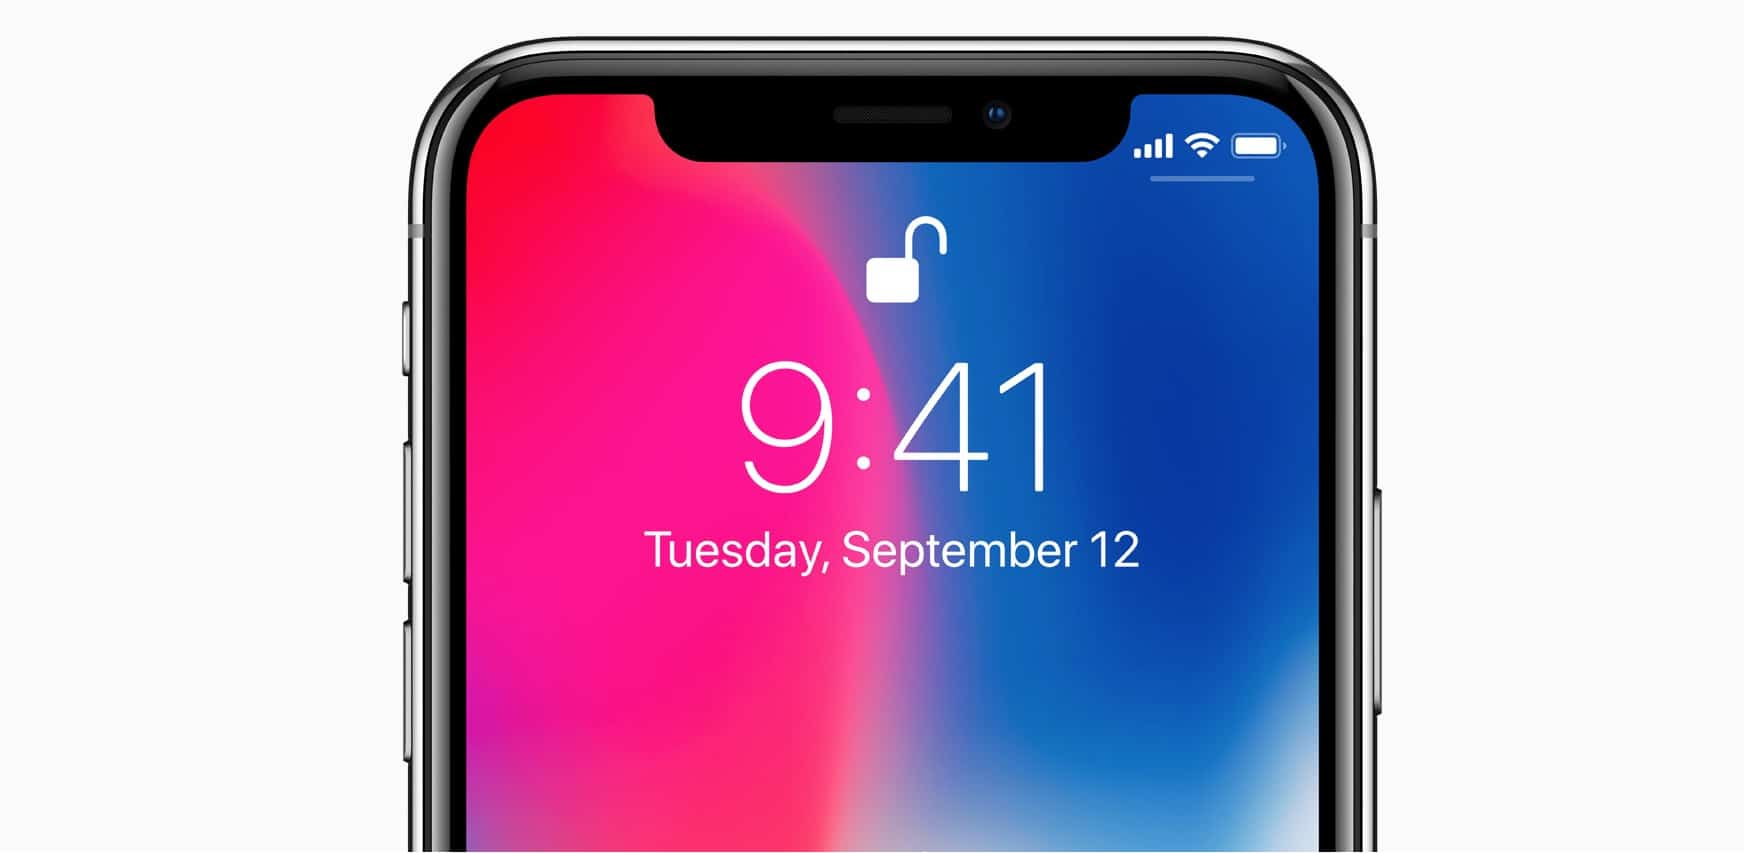 iPhone x battery percentage